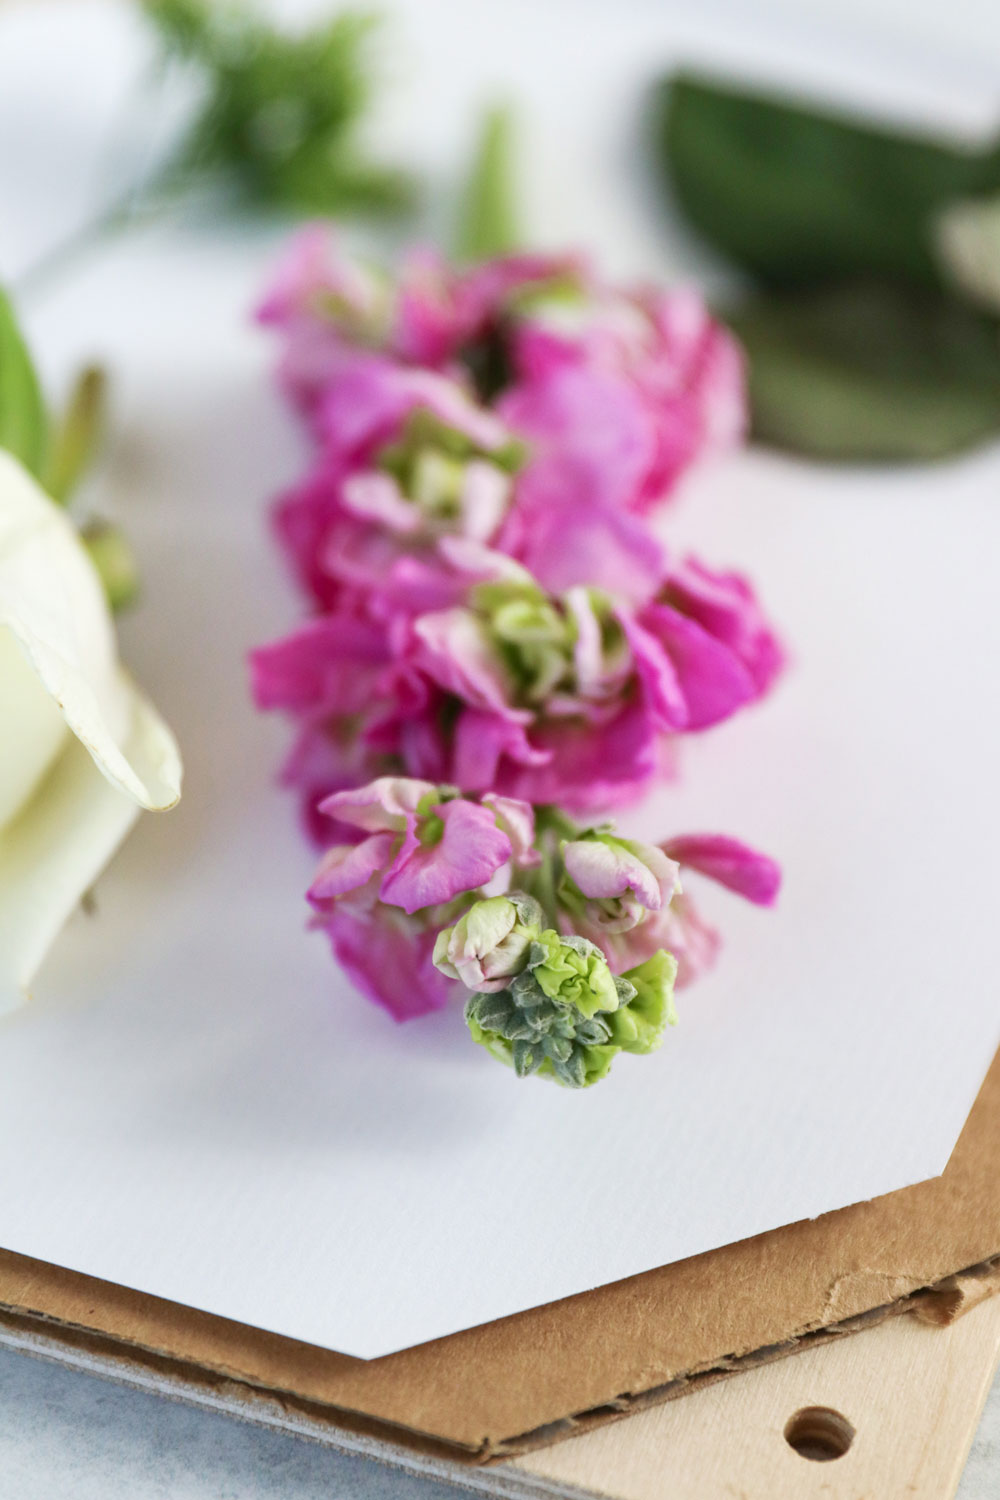 How To Press Flowers + Make a DIY Flower Press